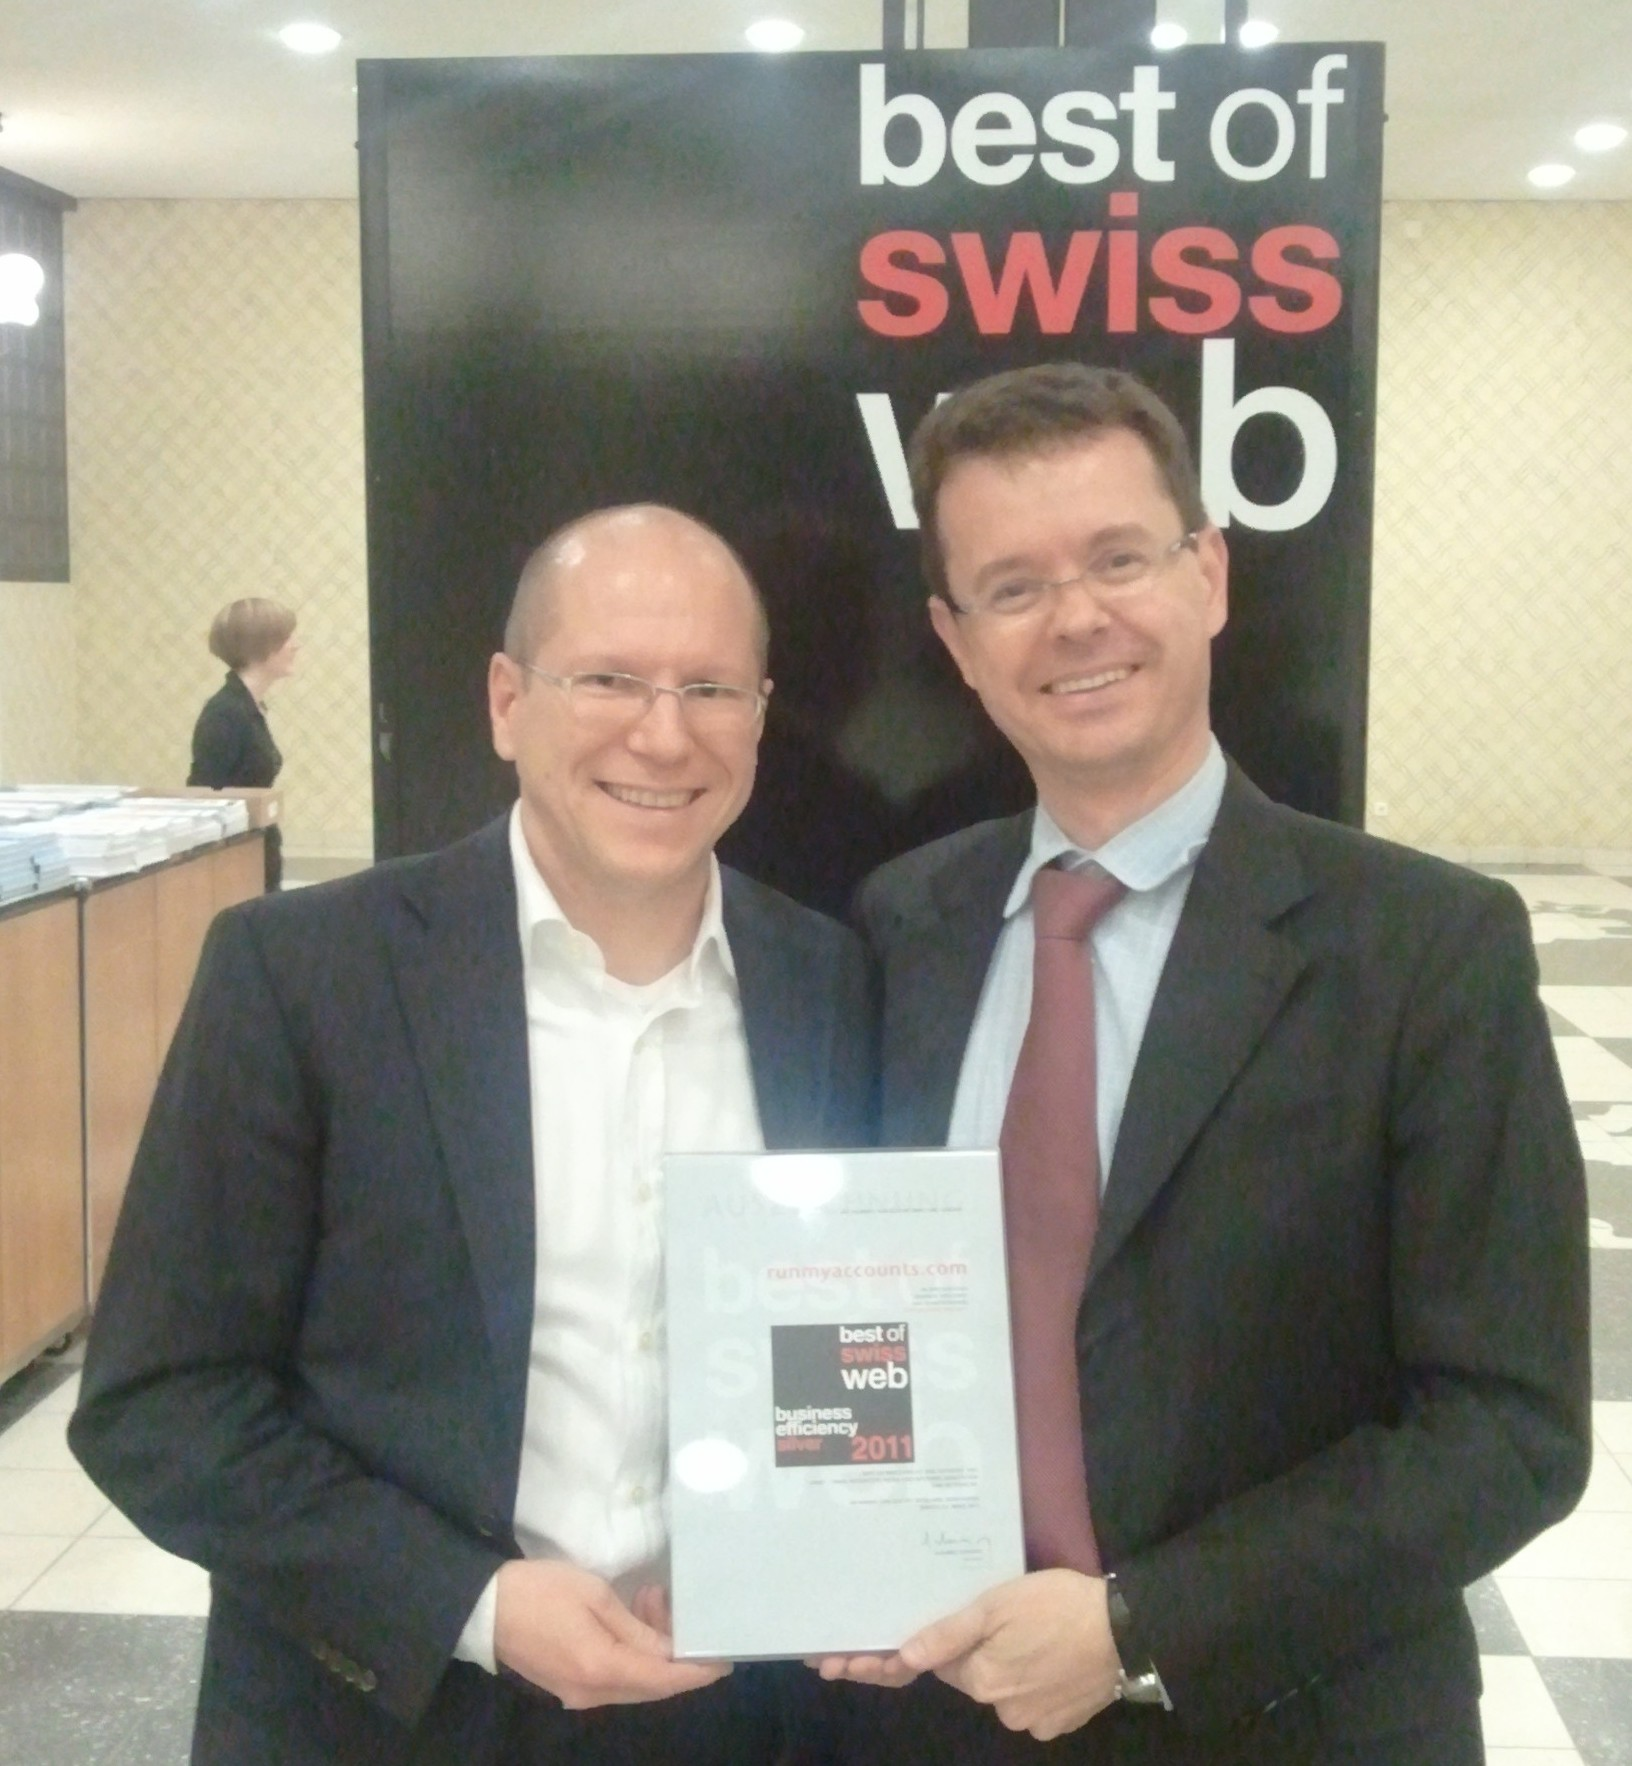 Thomas Brändle, CEO von Run my Accounts und Janis Wolf, Leiter Marketing und Vertrieb an den Best of Swiss Web Awards